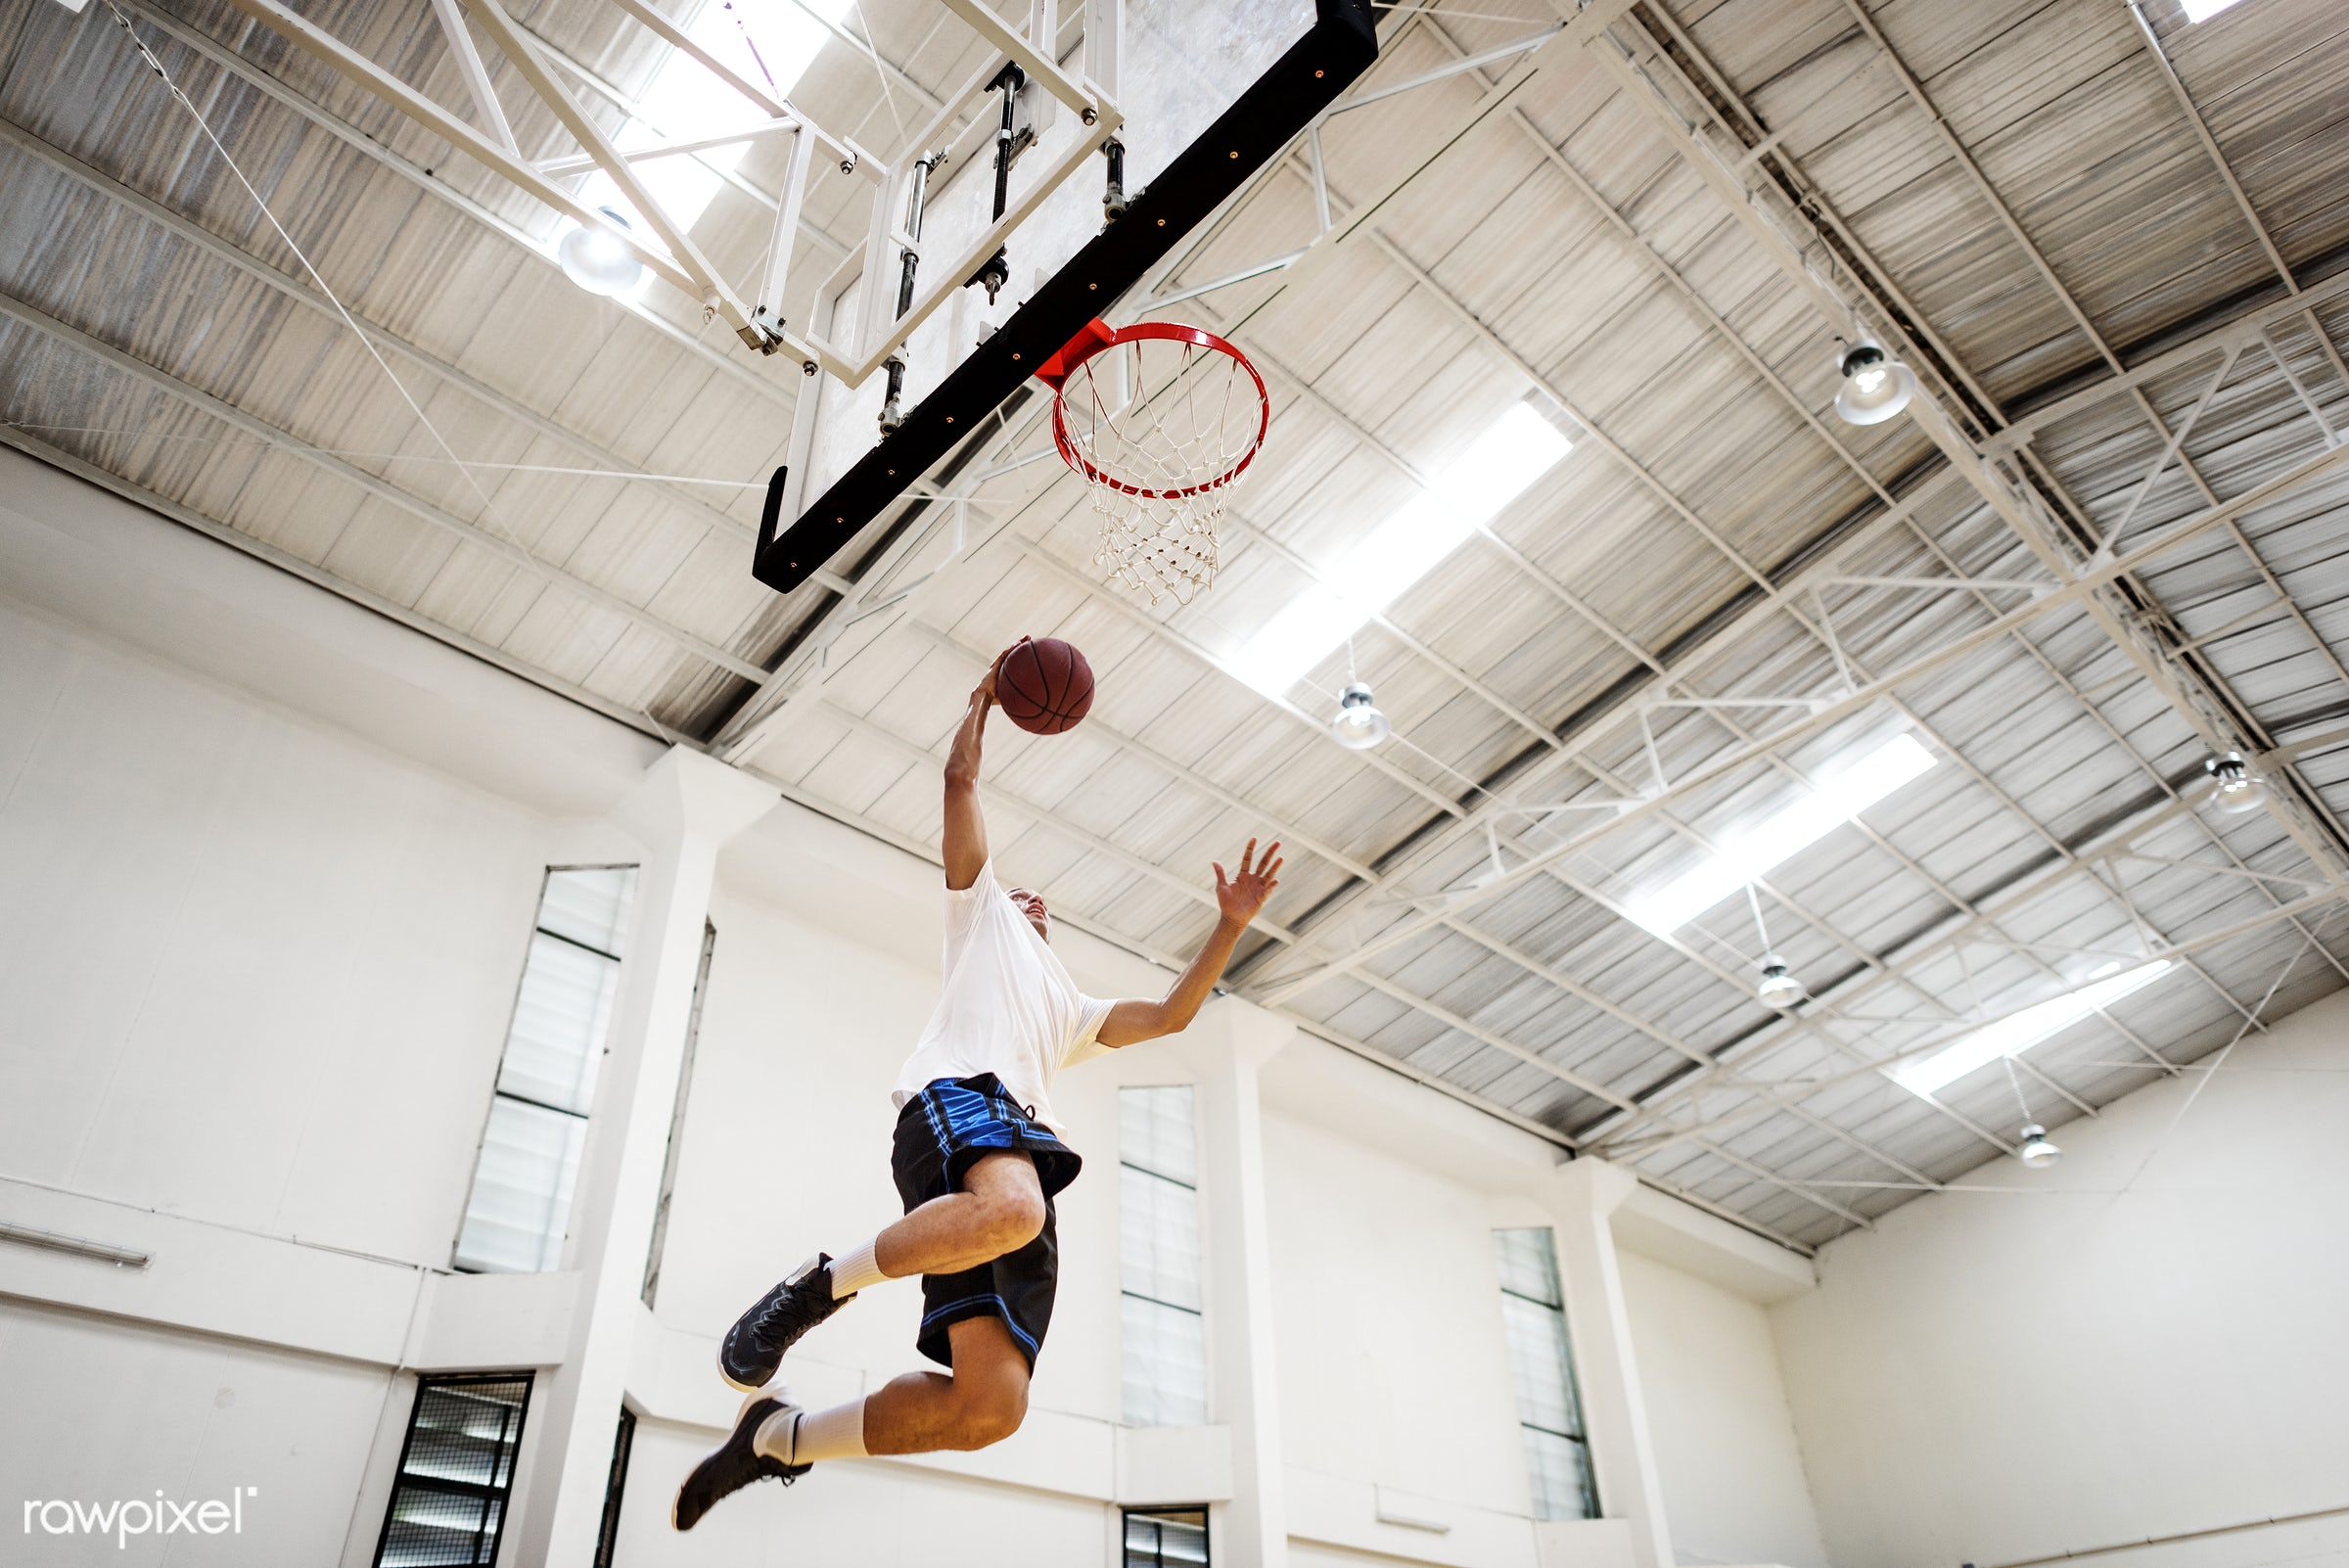 Young basketball player shoot - activity, ball, basketball, boy, dunk, exercise, game, gym, gymnasium, hoop, jump, loop, man...